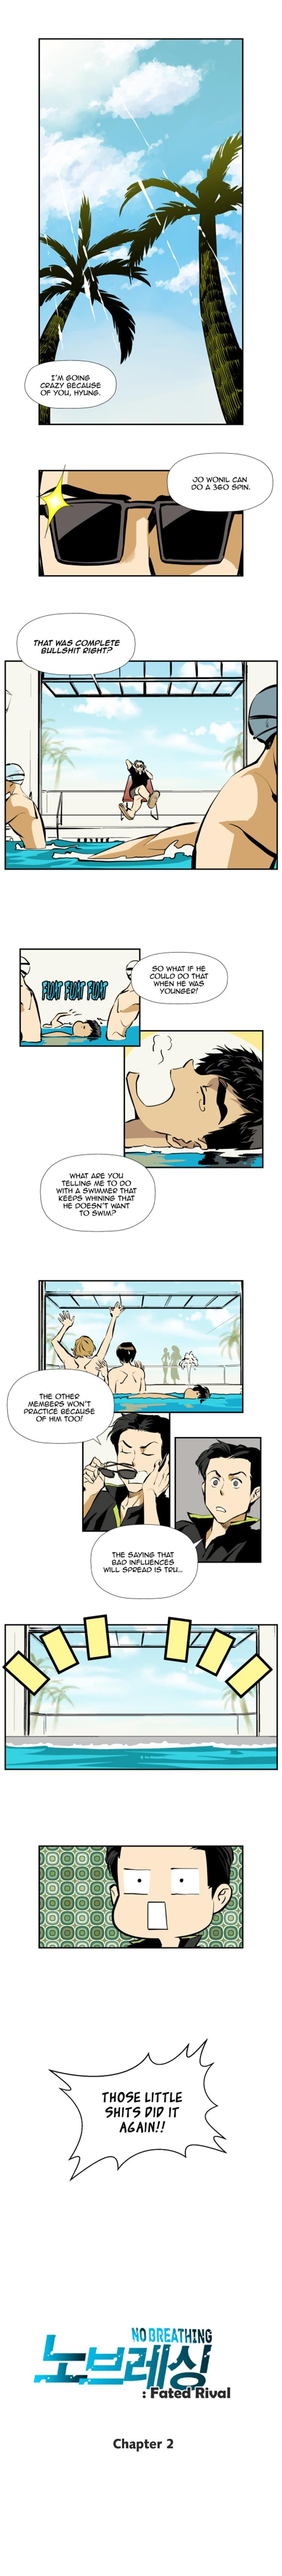 No Breathing 2 Page 1